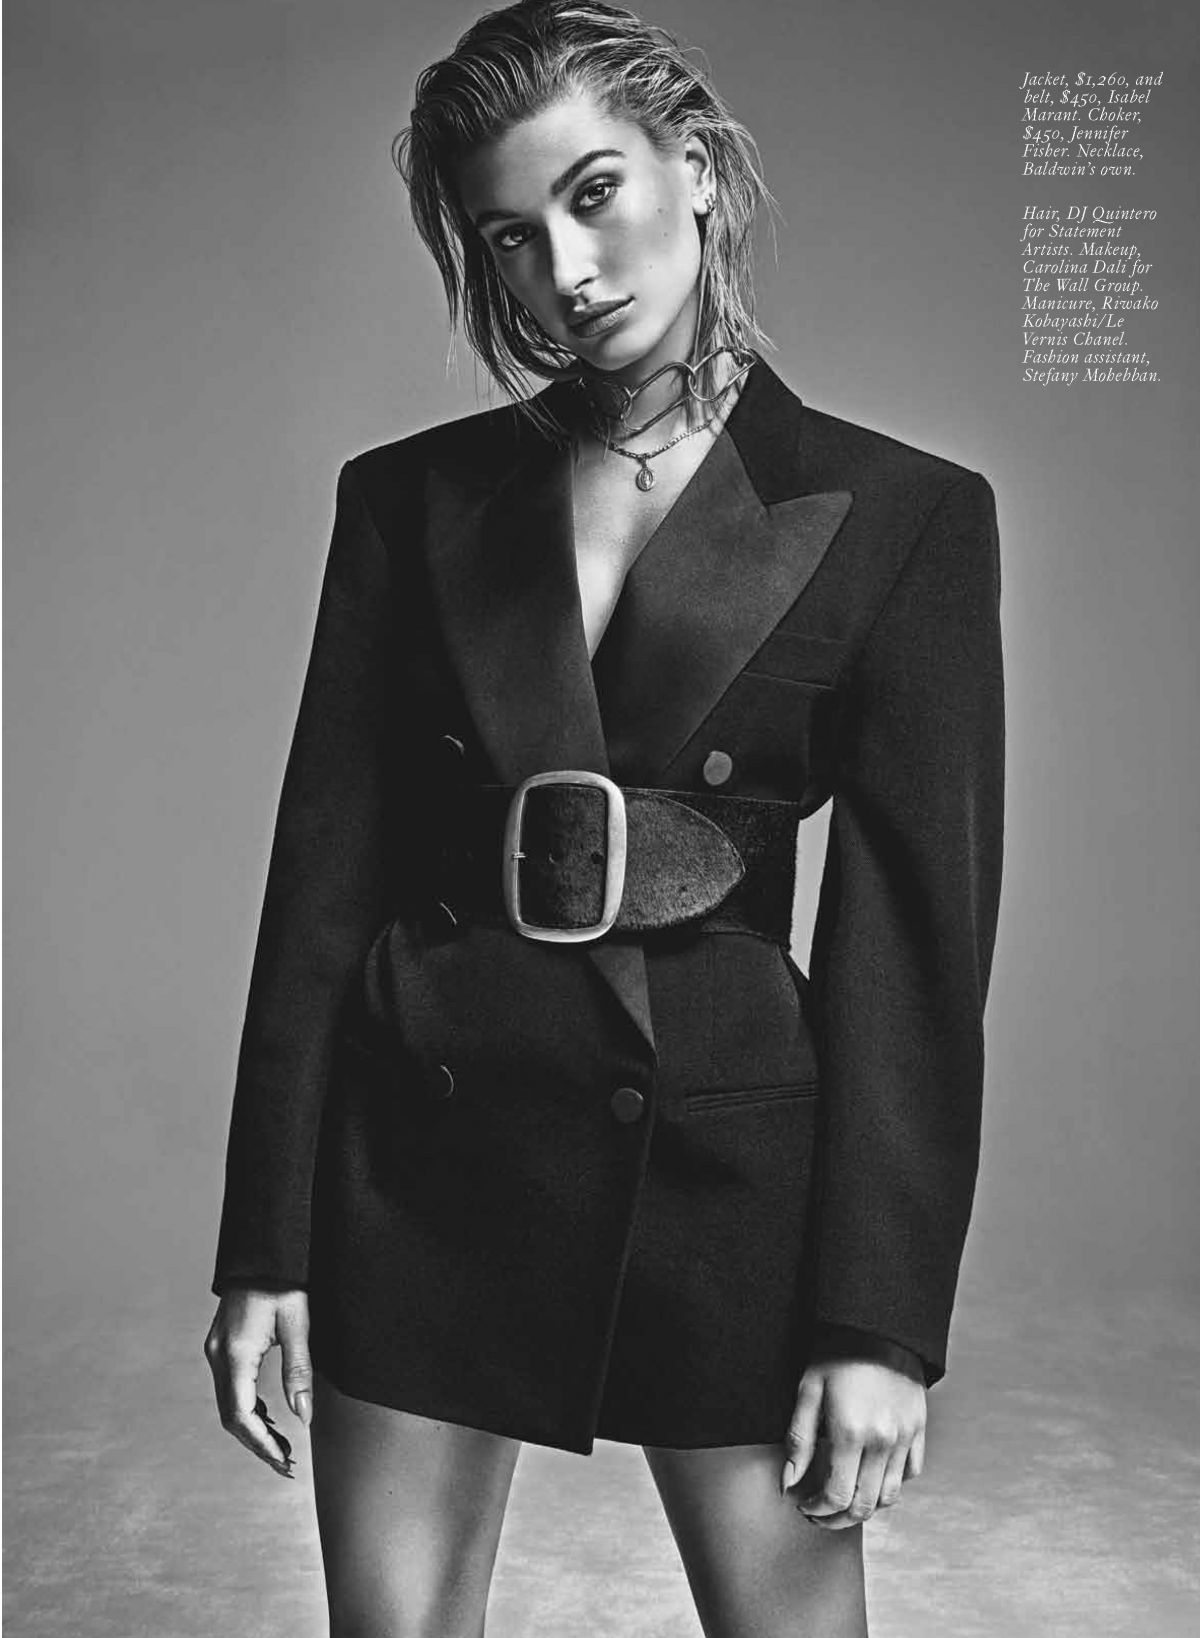 HAILEY BALDWIN In Fashion Magazine, October 2017 Issue